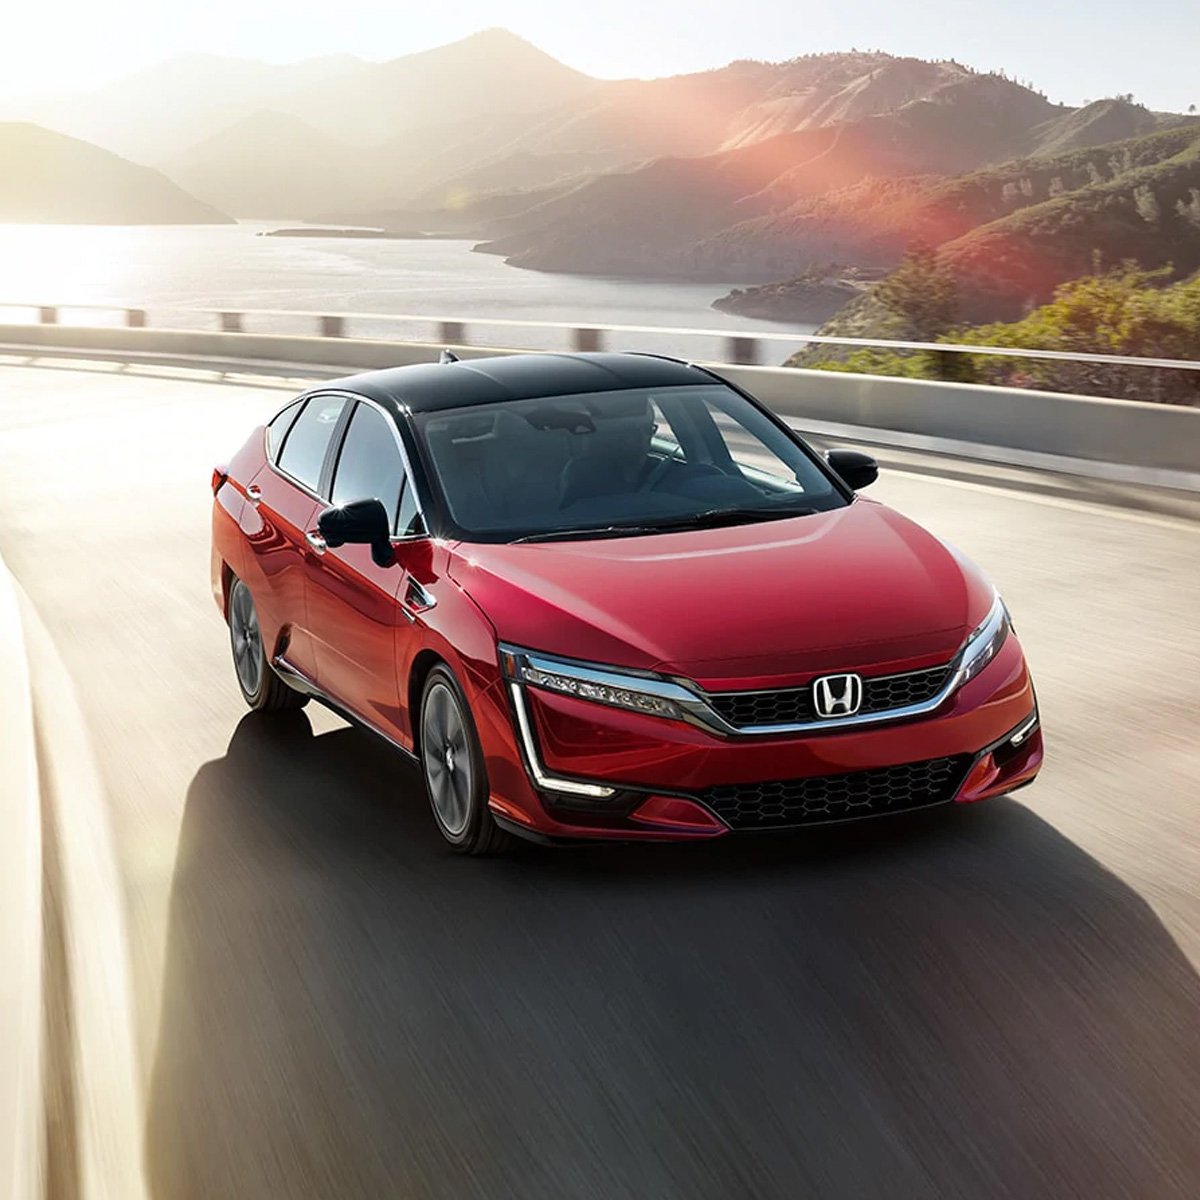 frontal profile of honda clarity sedan in red color driving on a bridge curve at sunset